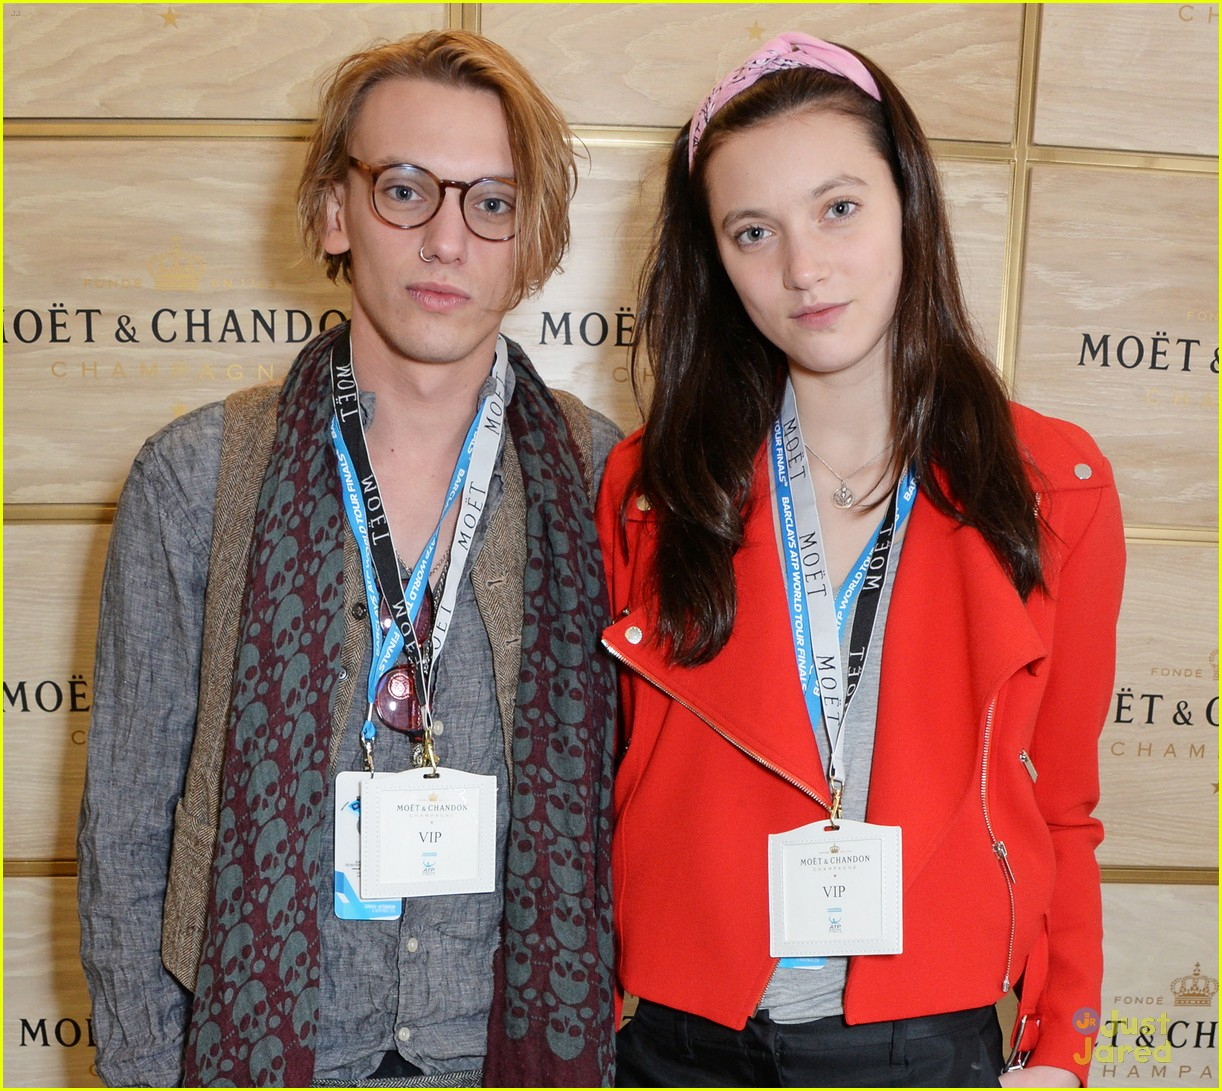 jamie campbell bower matilda lowther make one very cute couple 04